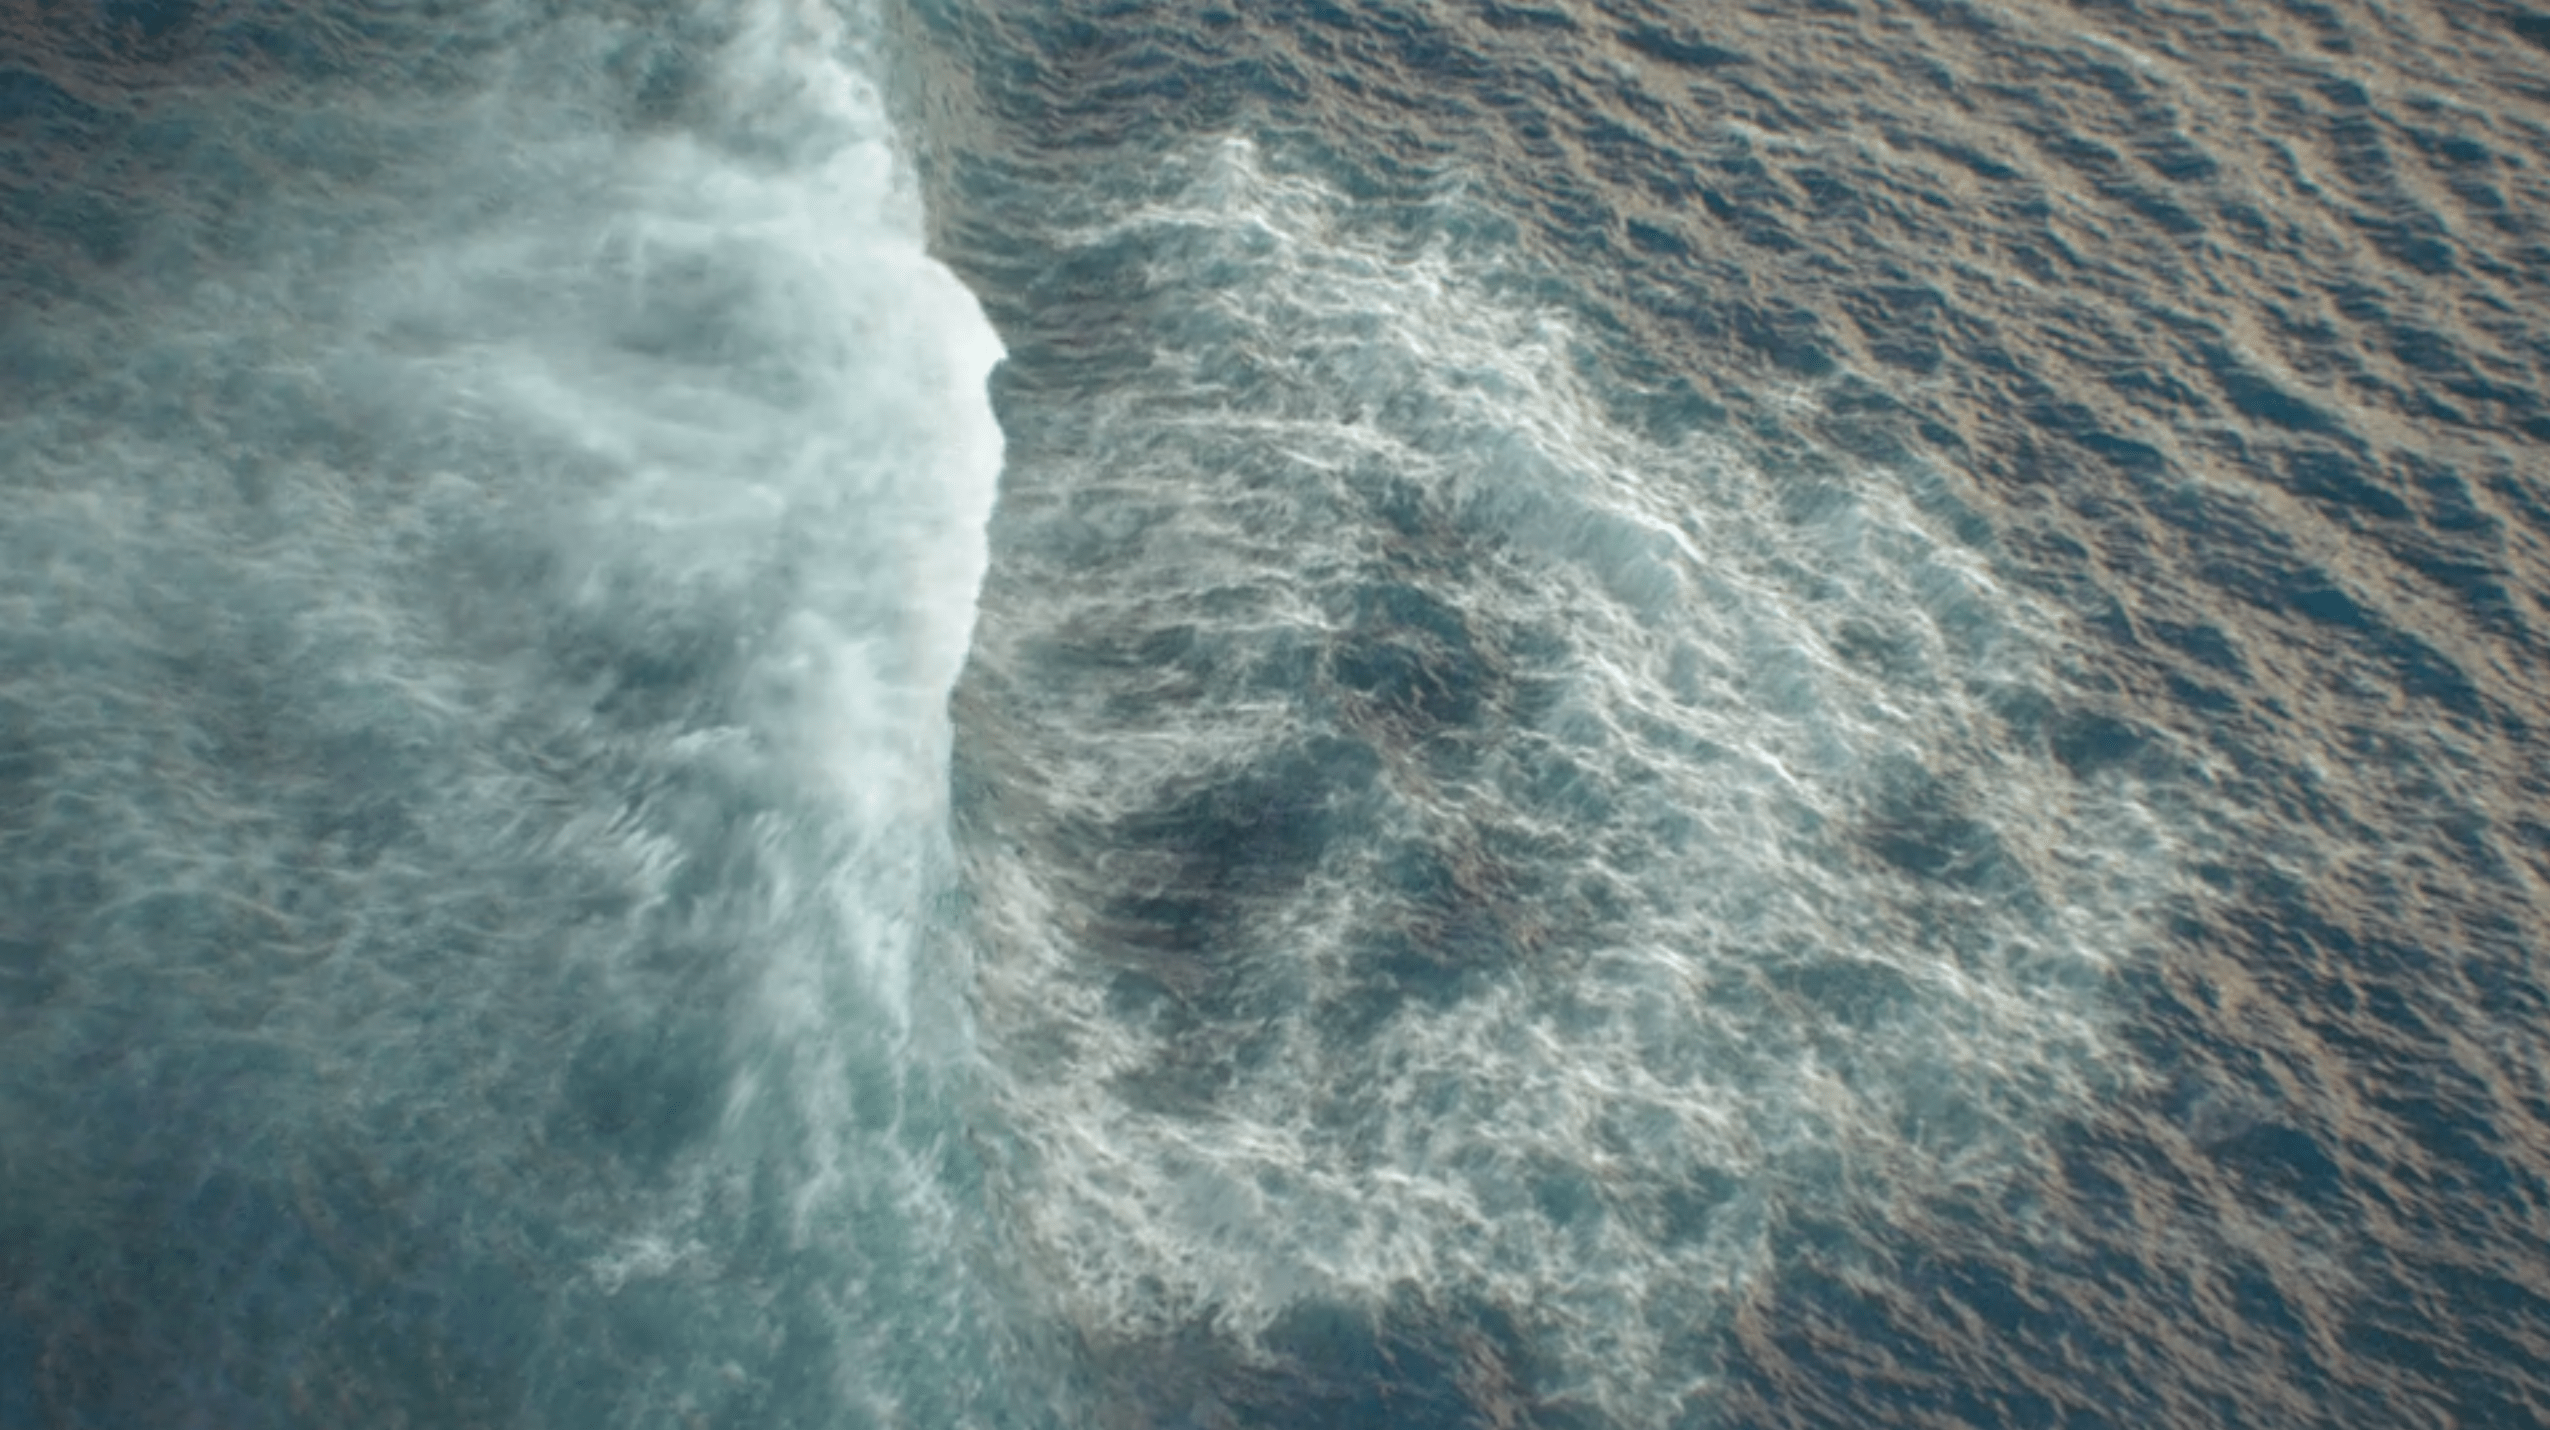 Crashing waves from above CG